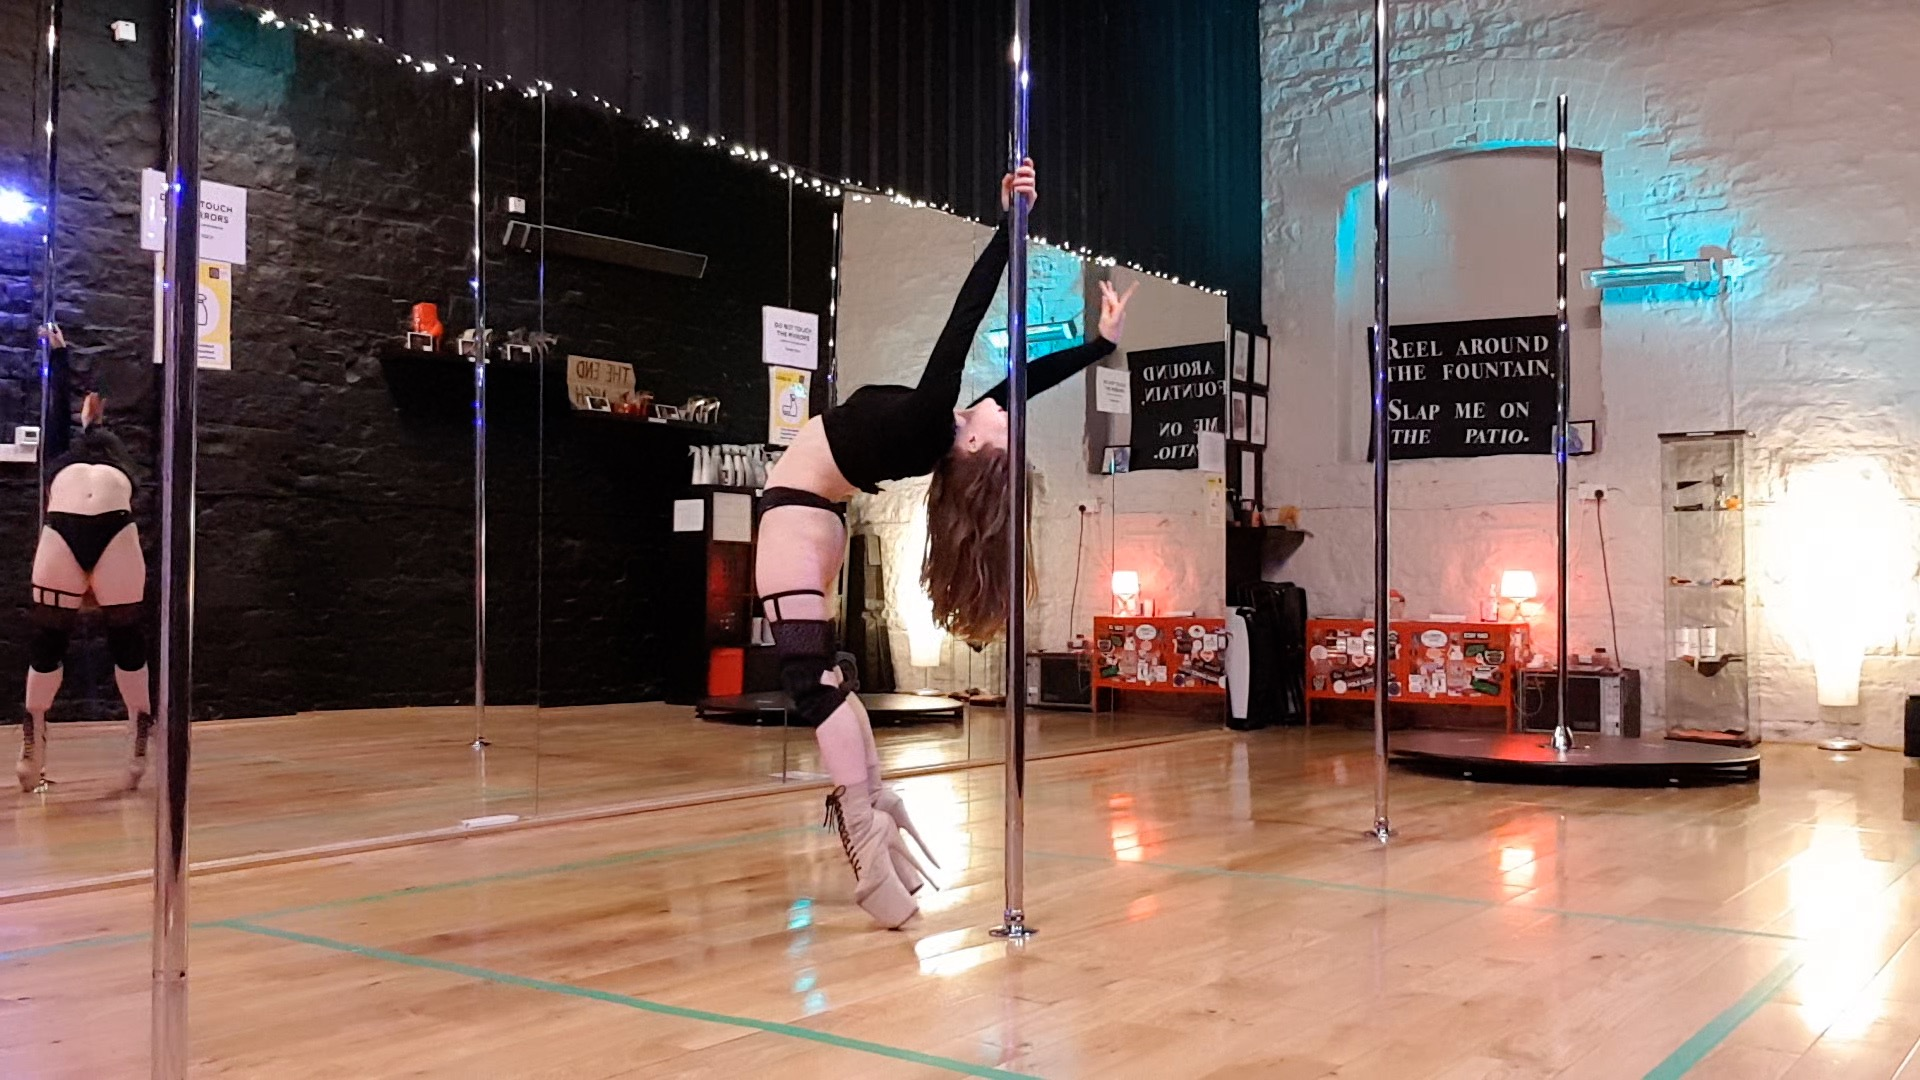 arlene doing a backbend with the pole